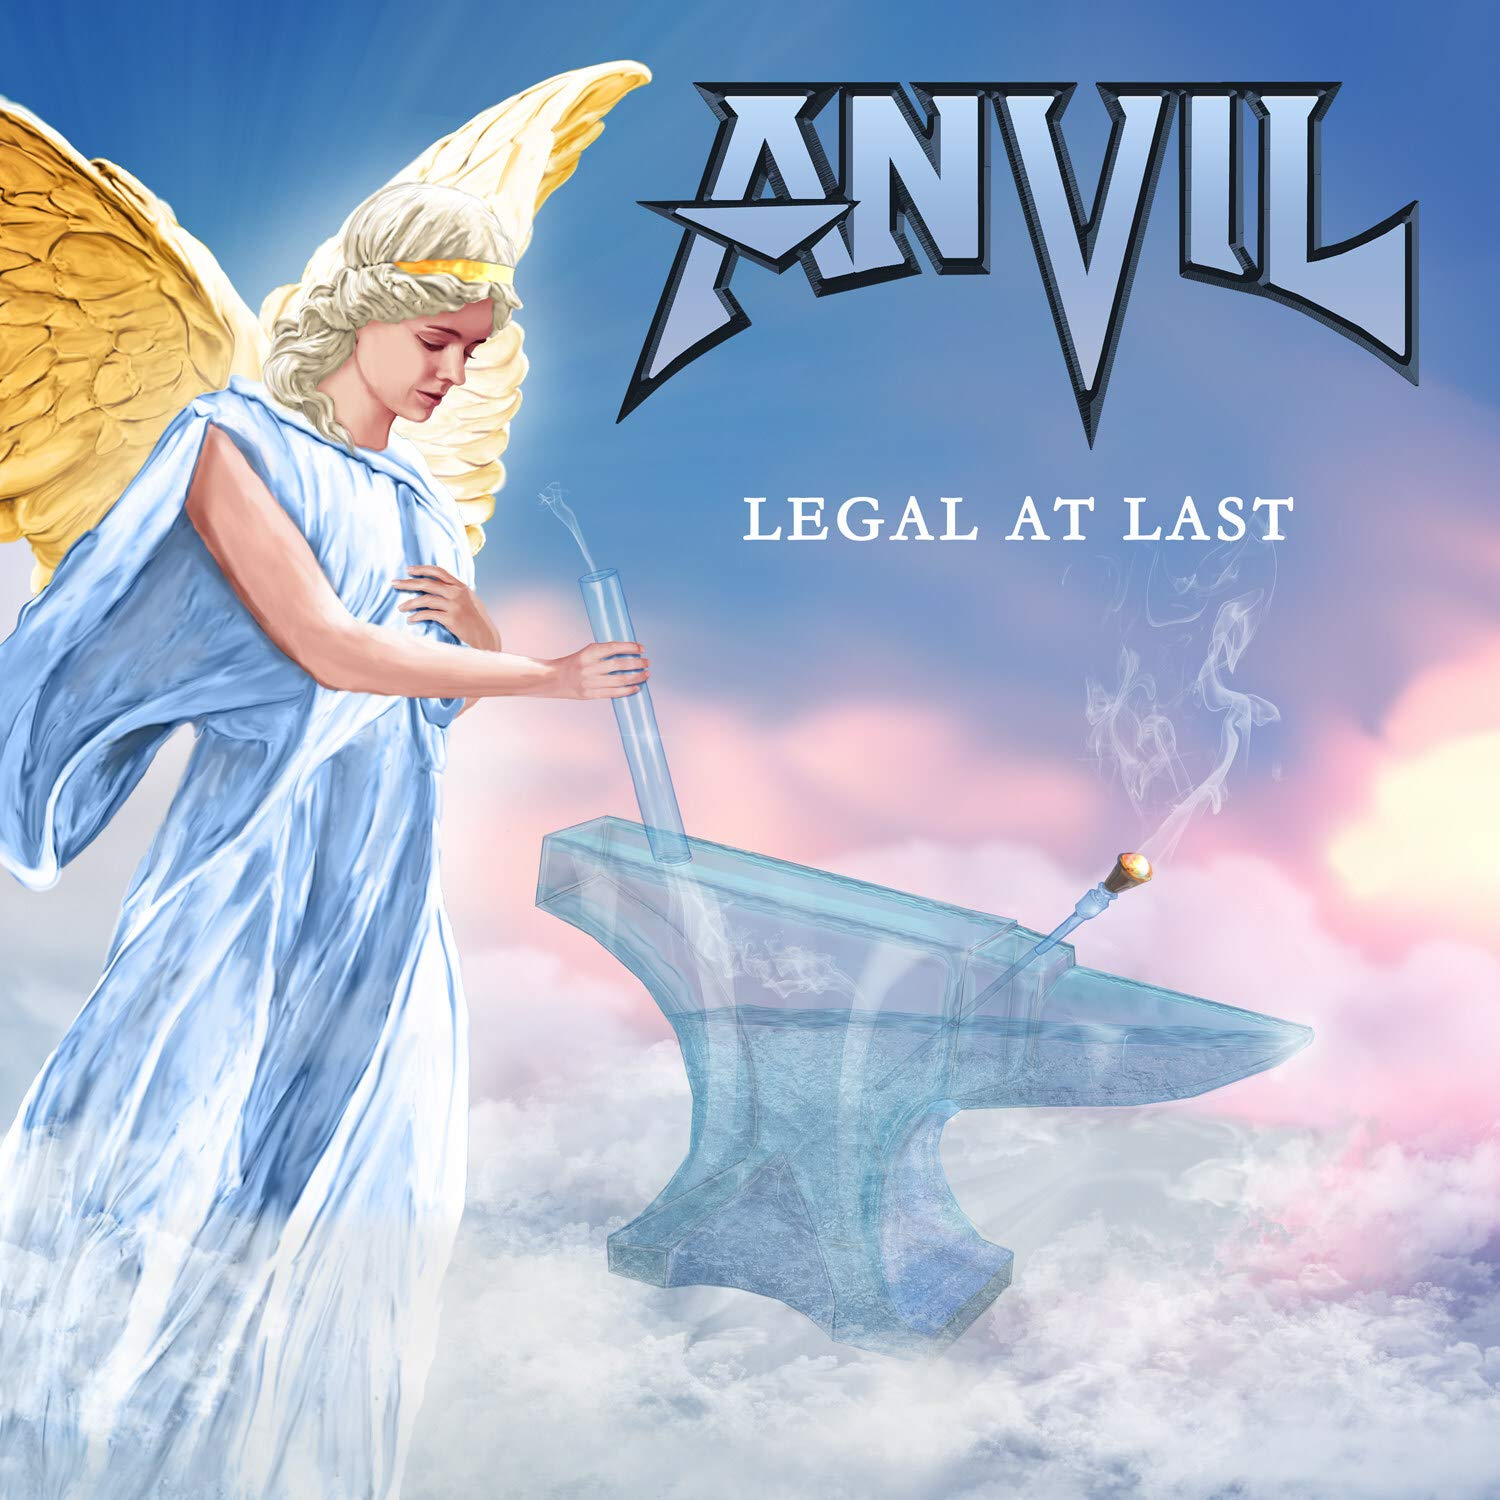 Legal at Last (Digipak) - Anvil: Amazon.de: Musik